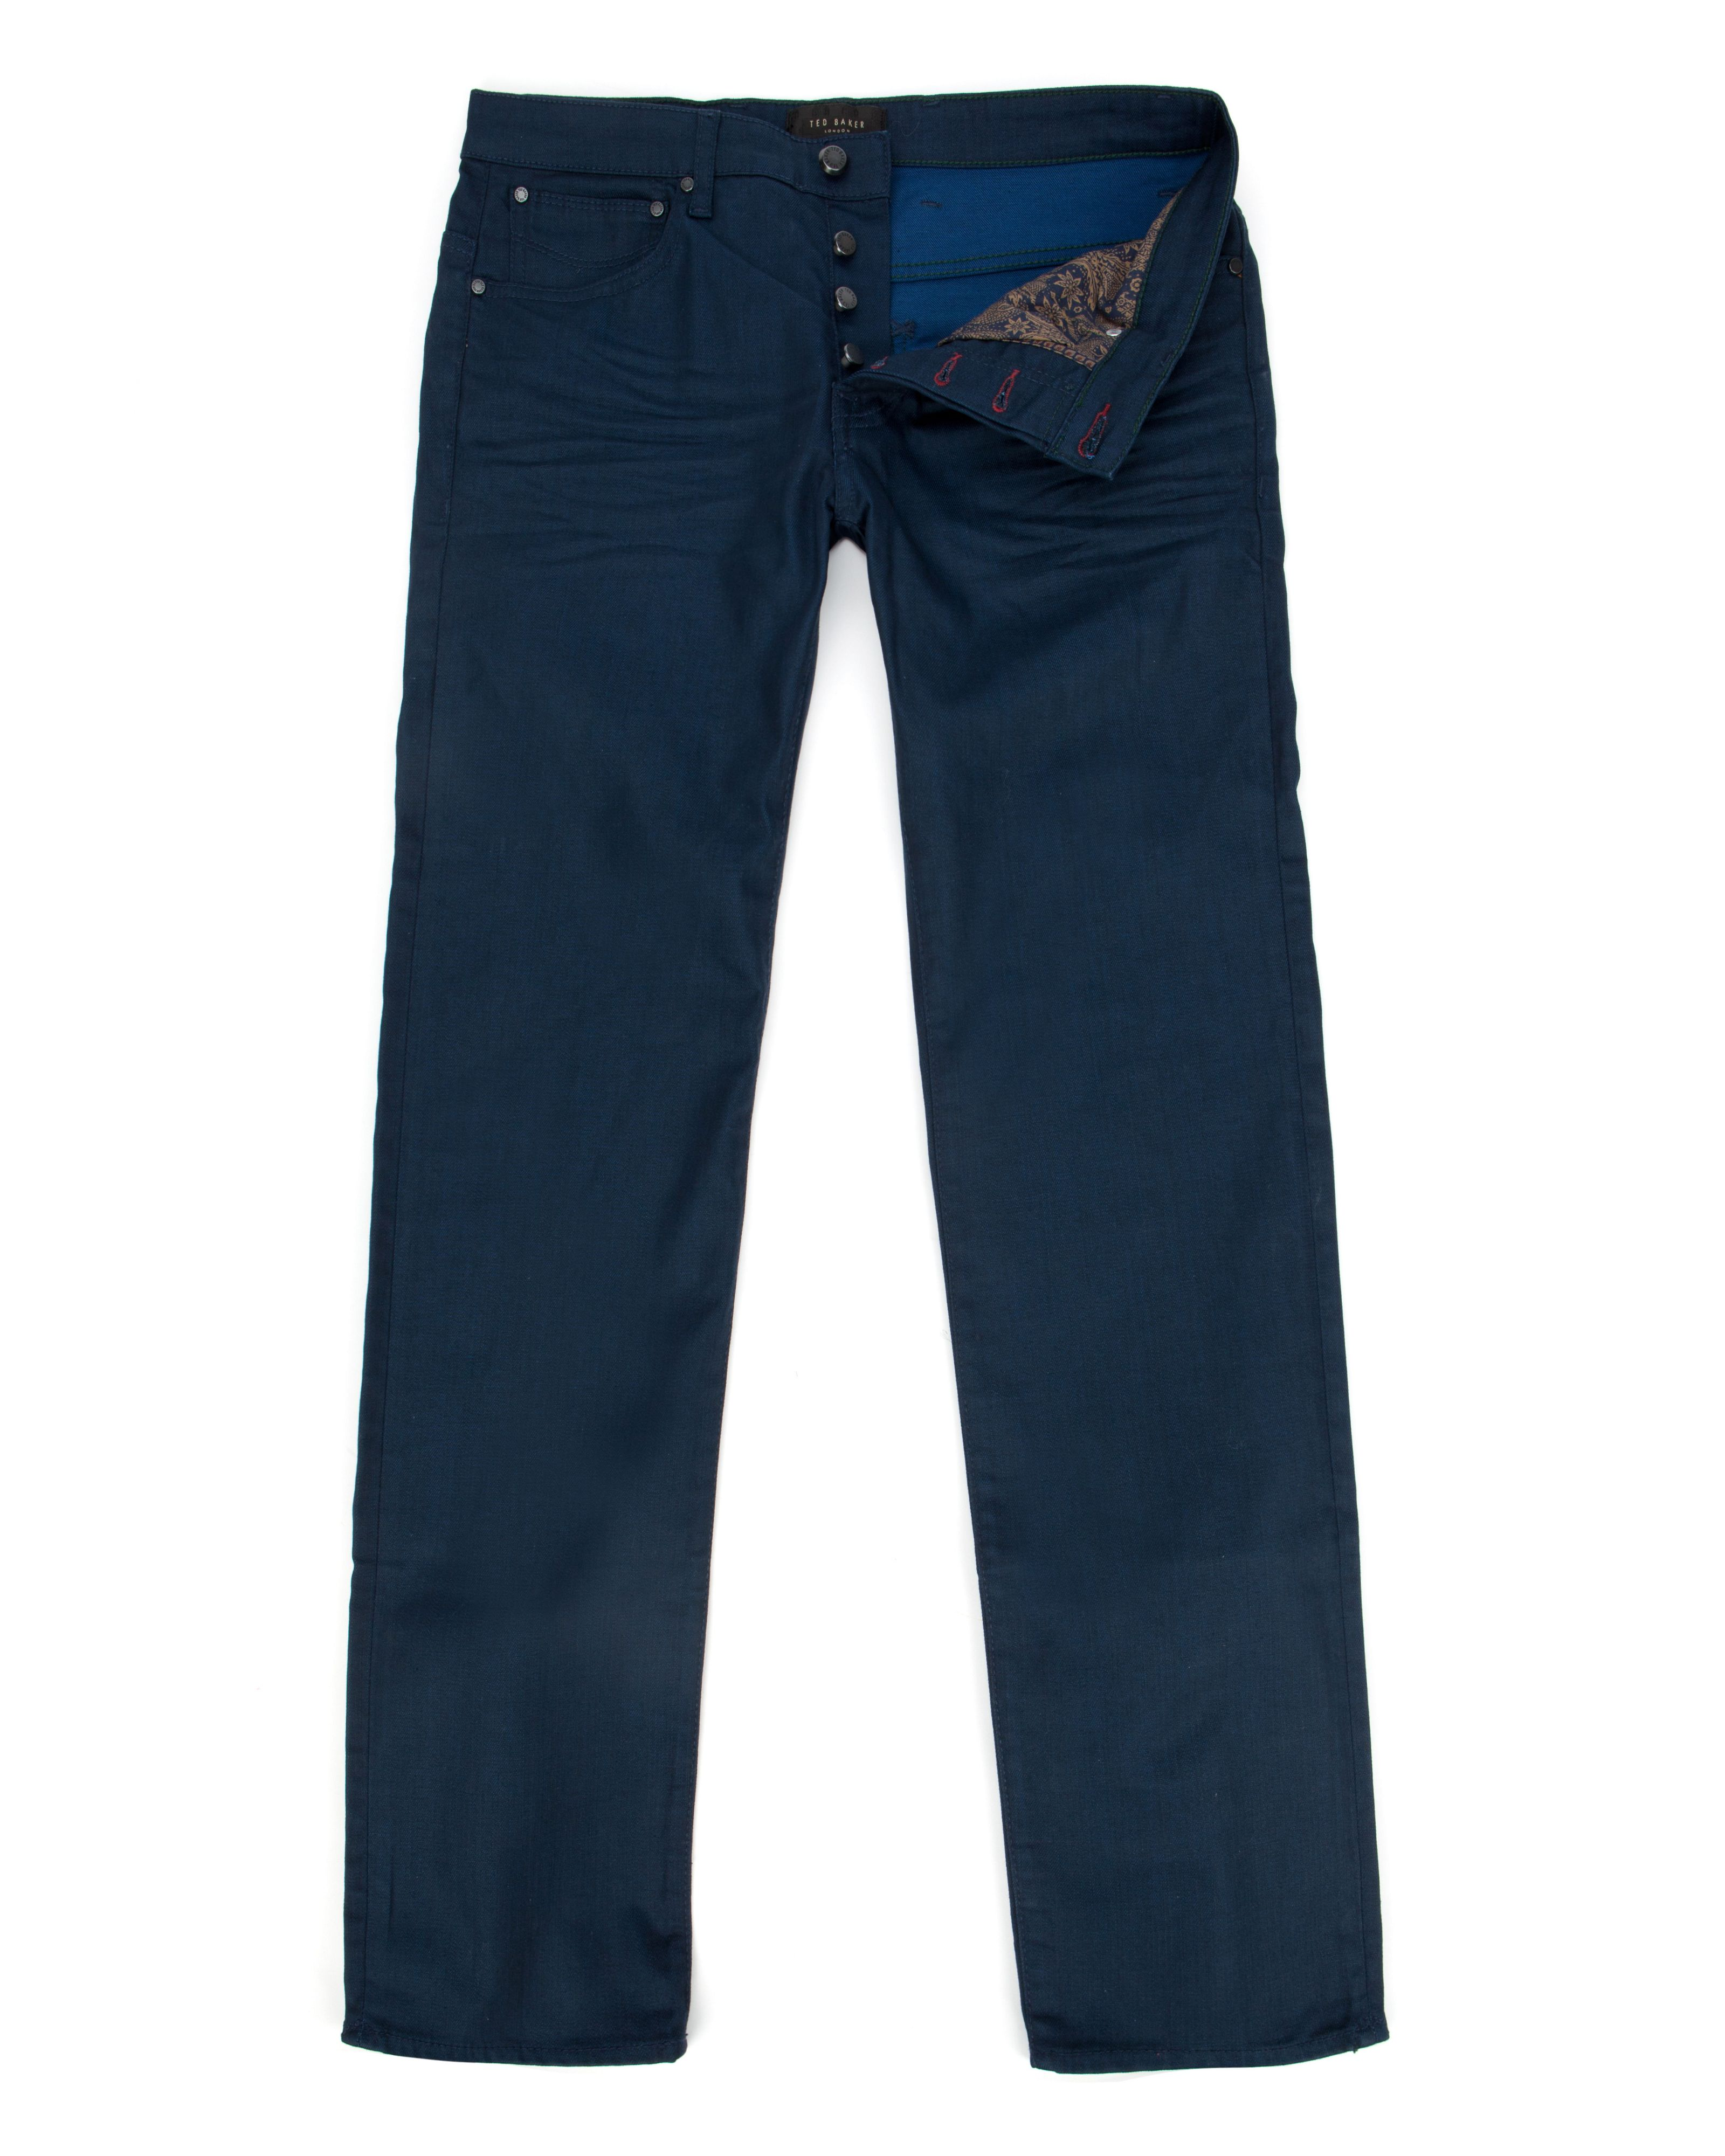 Sidbury slim fit smart jeans